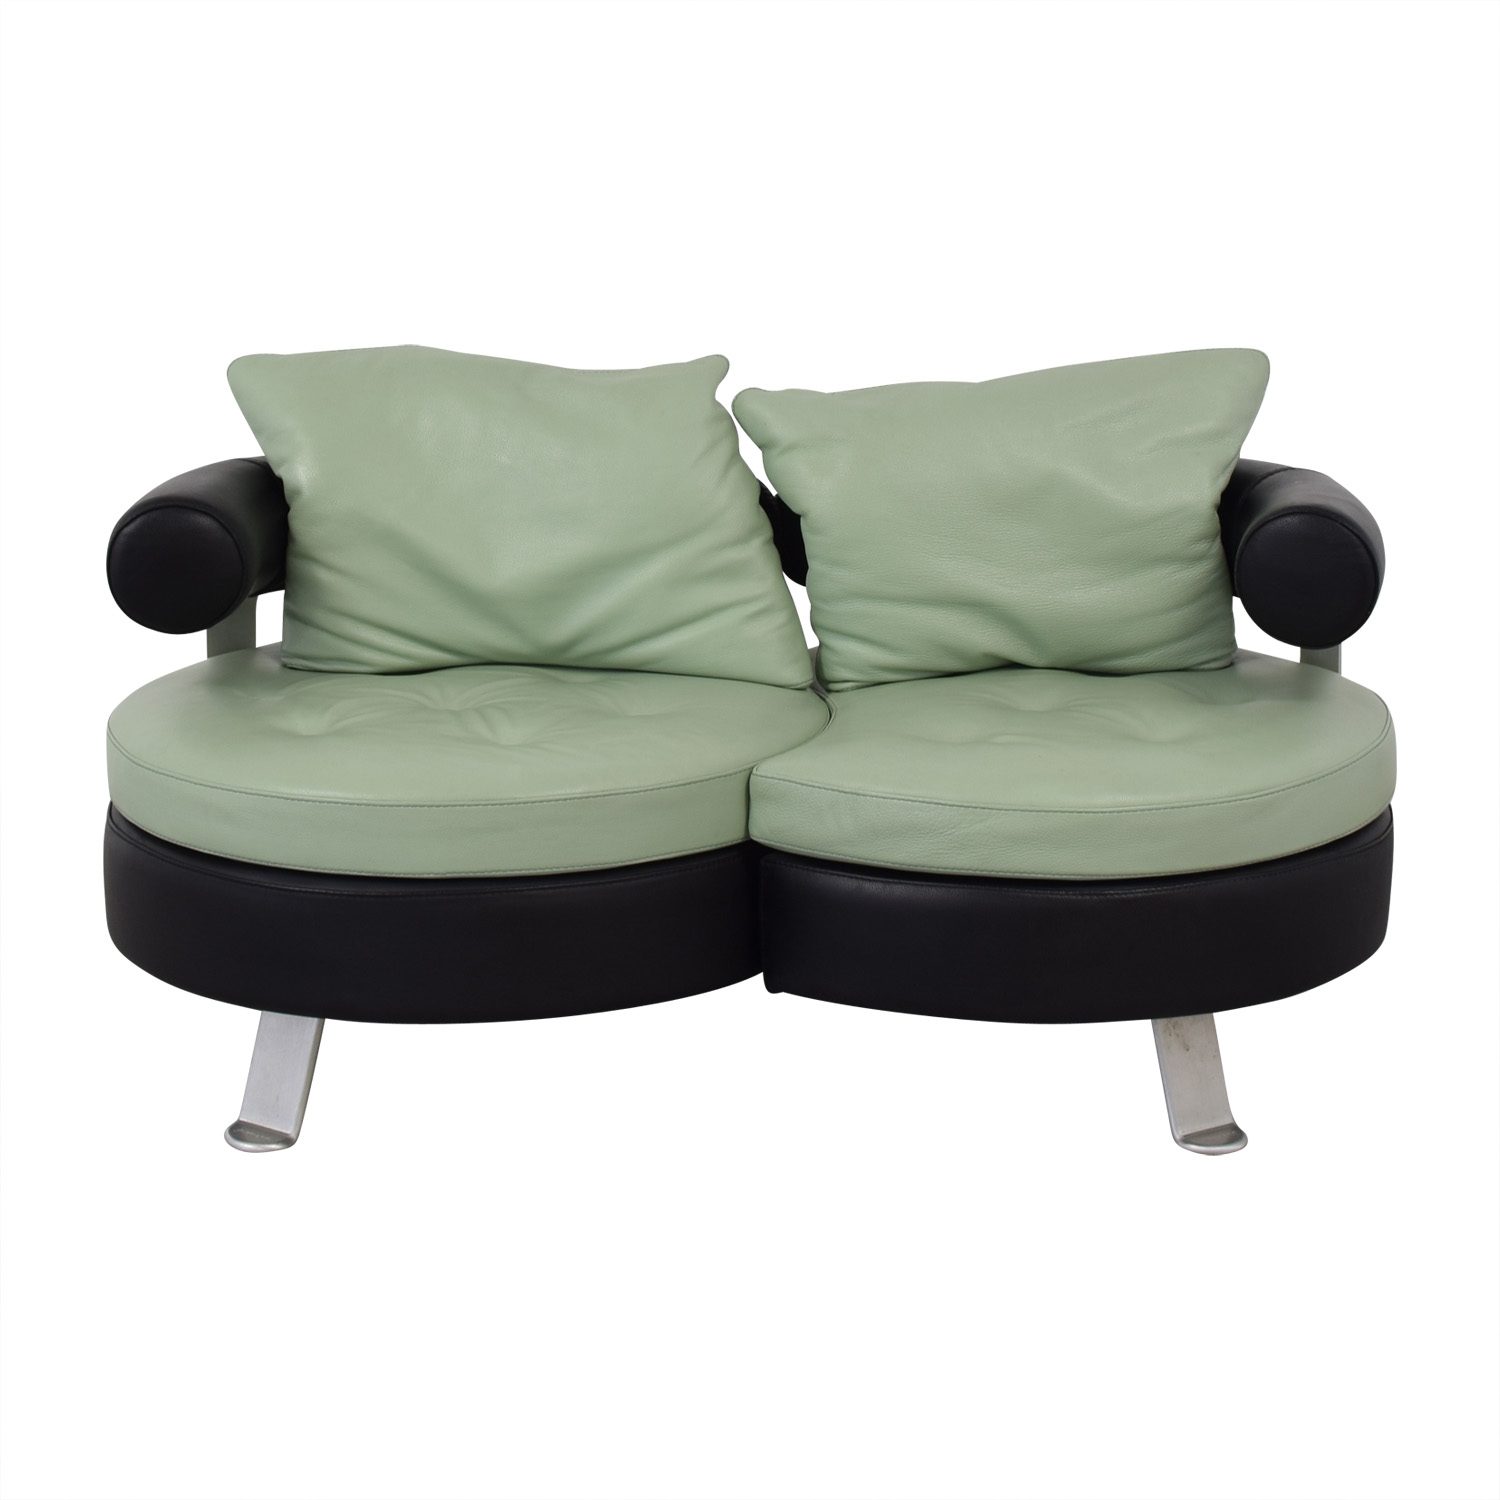 Formenti Formenti Swiveling Loveseat for sale